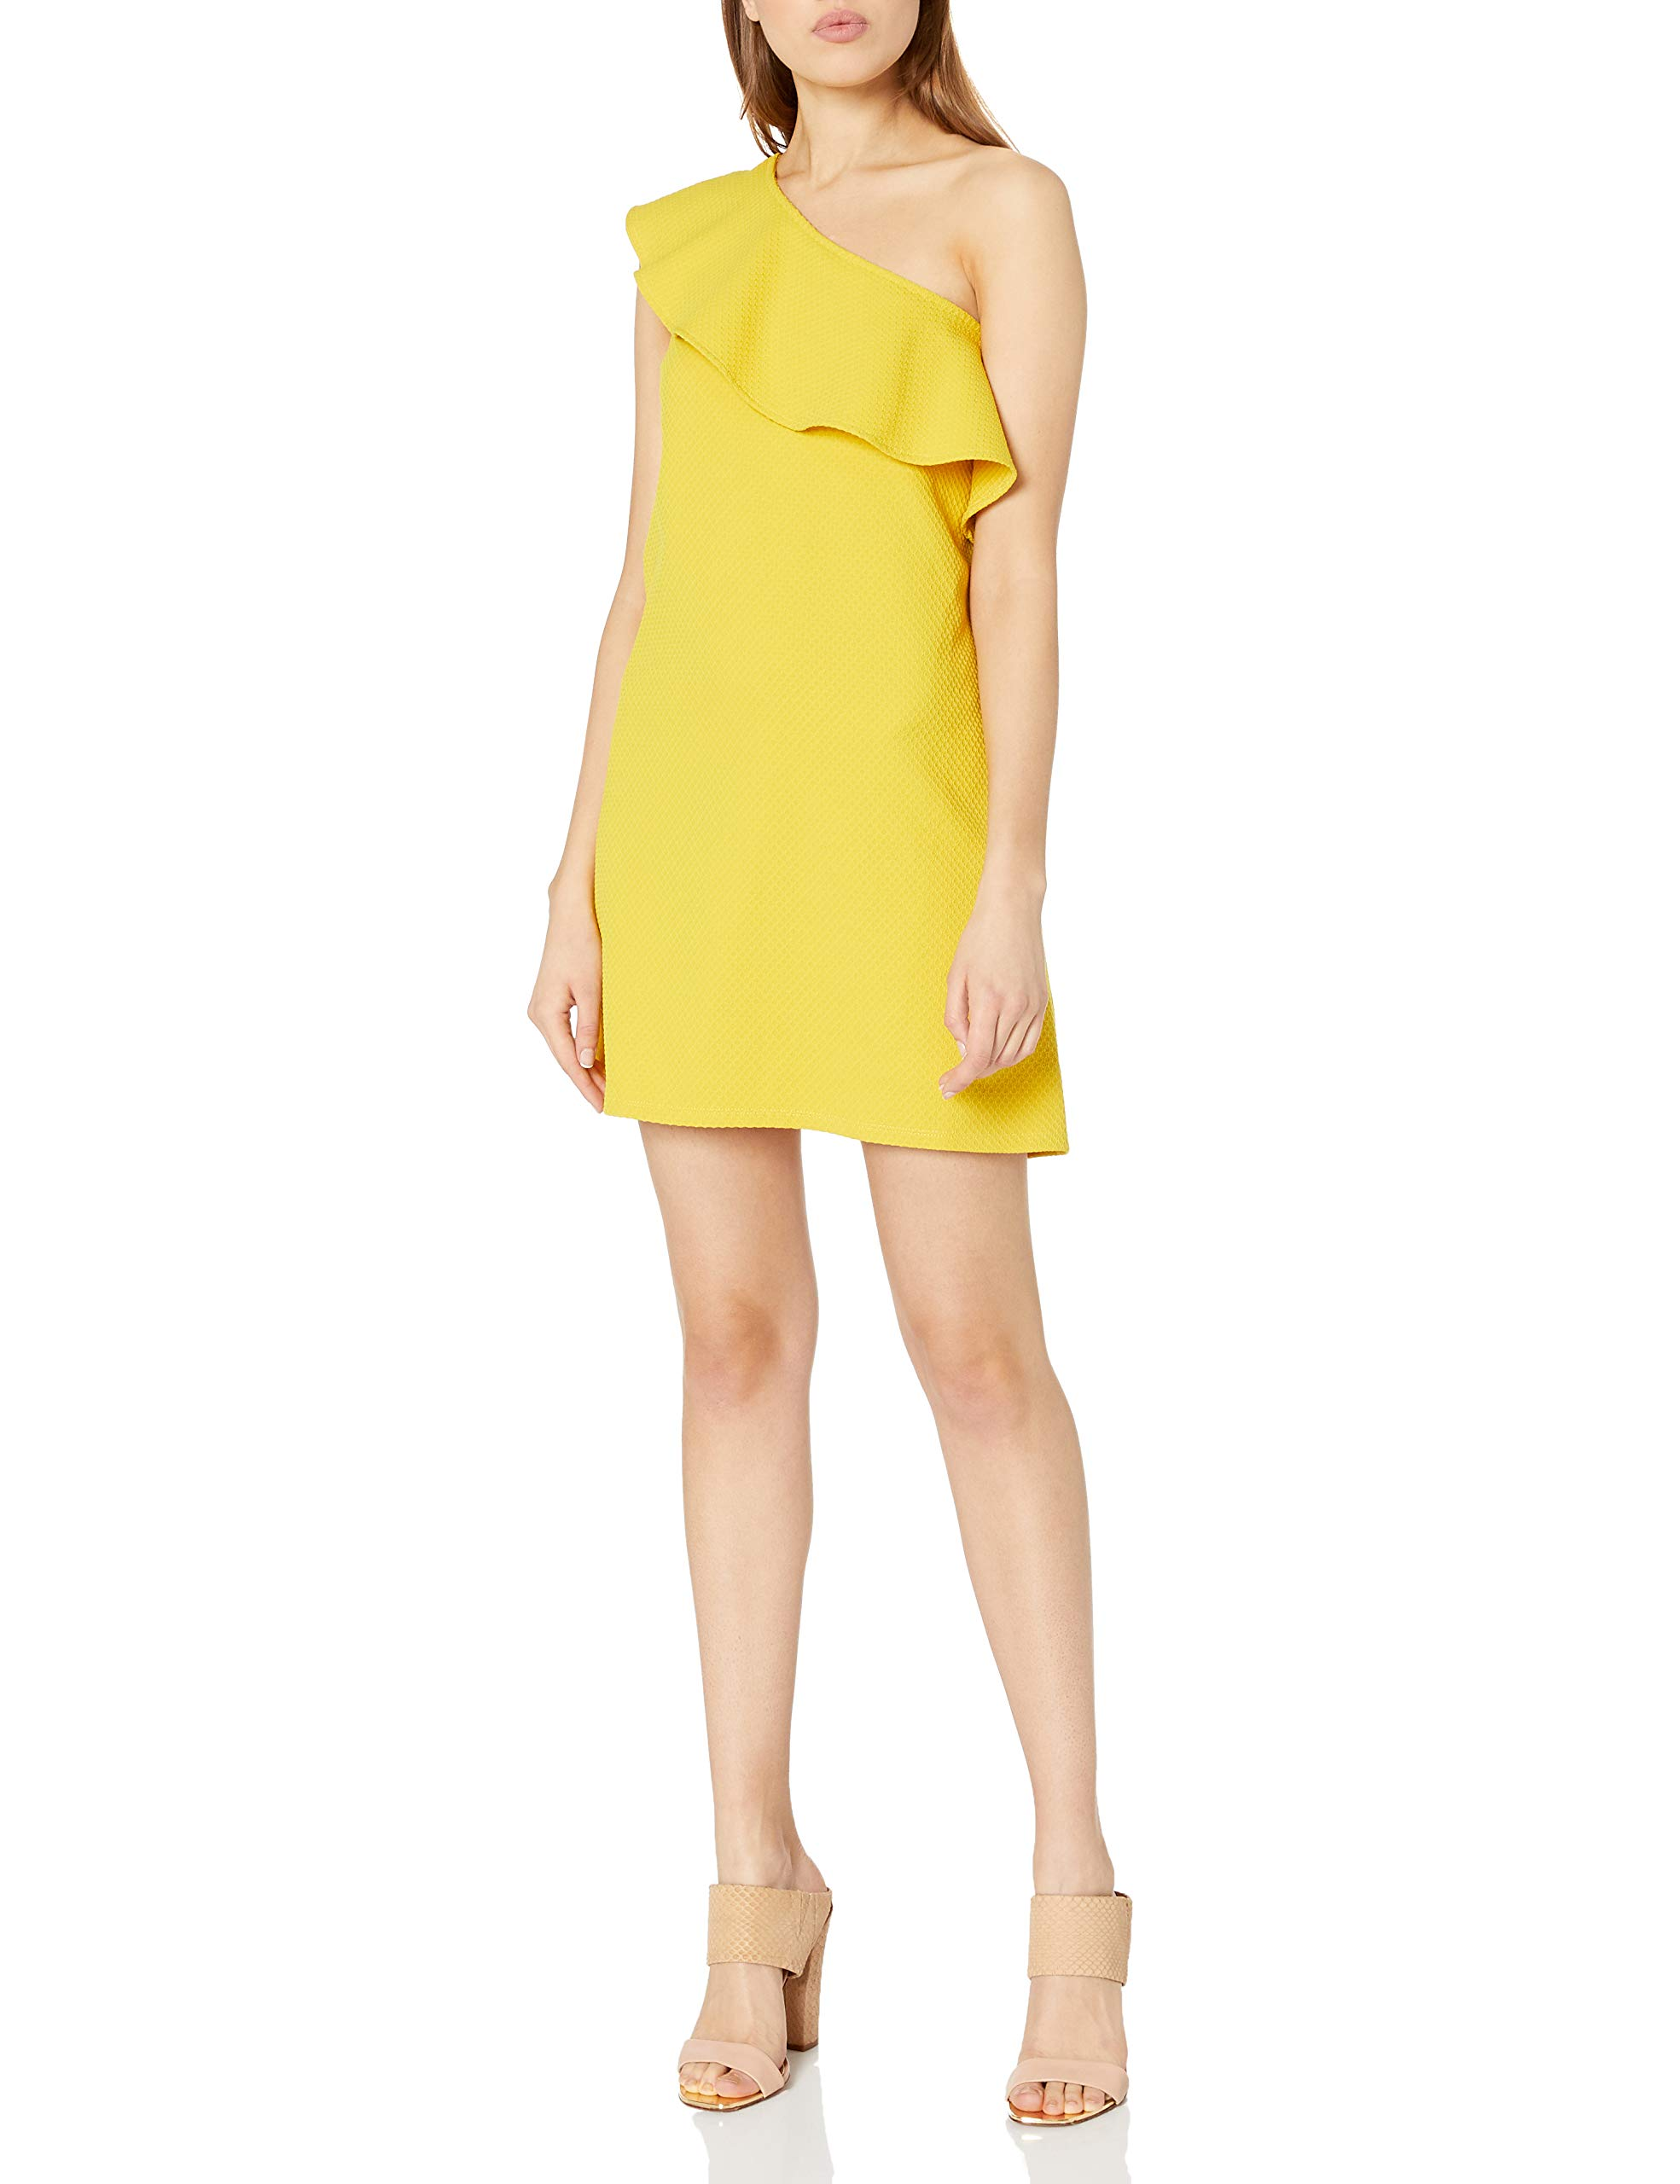 Available at Amazon: cupcakes and cashmere Women's Tex Ruffle One Shoulder Textured Dress